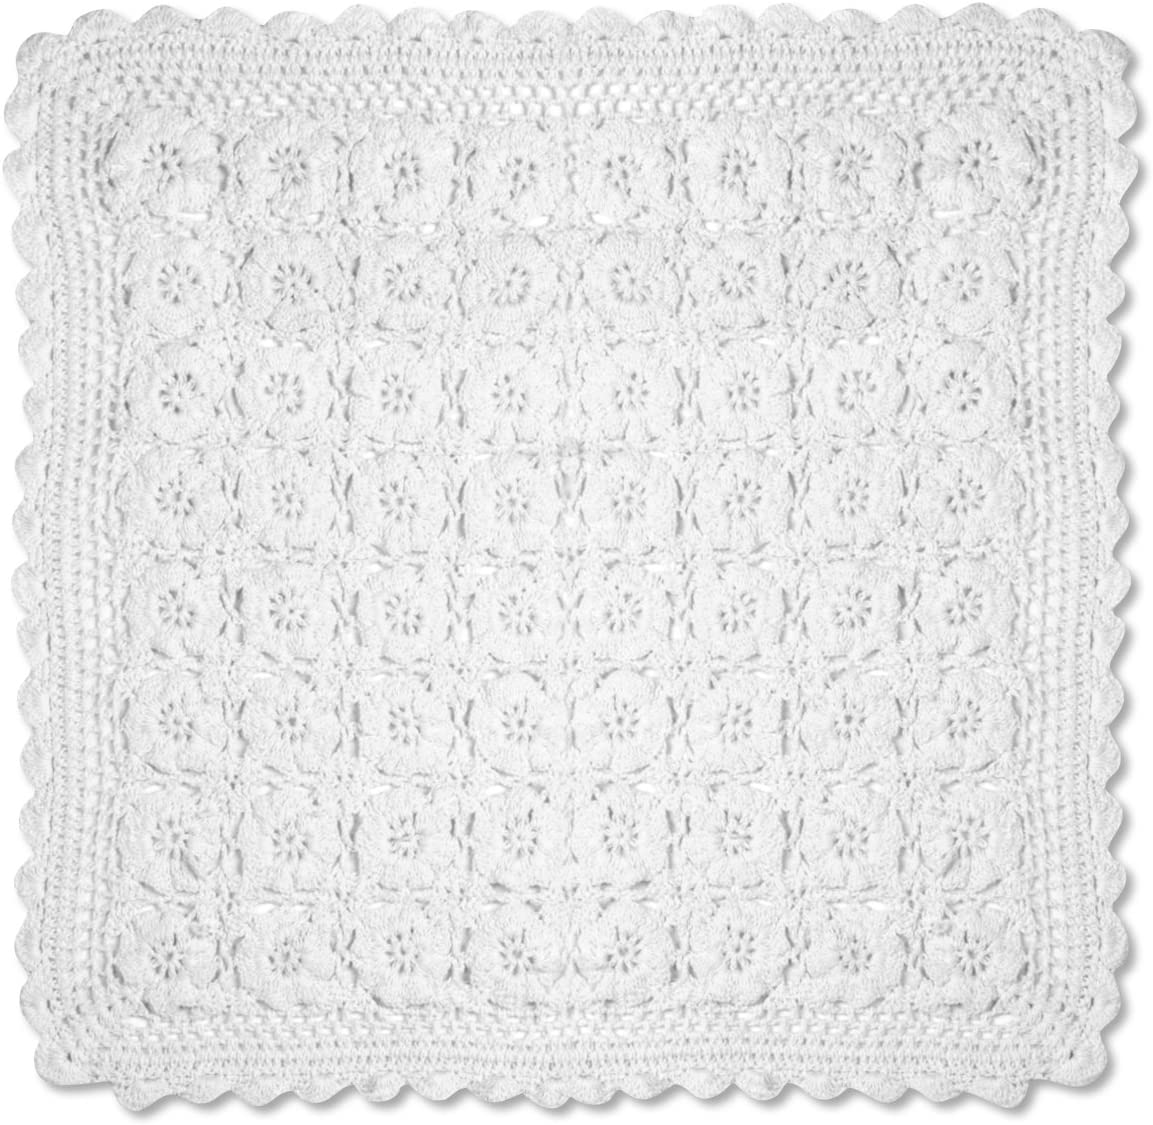 Heritage Lace OFFicial Blue Ribbon Crochet 14-Inch by Spasm price 14 Doily White